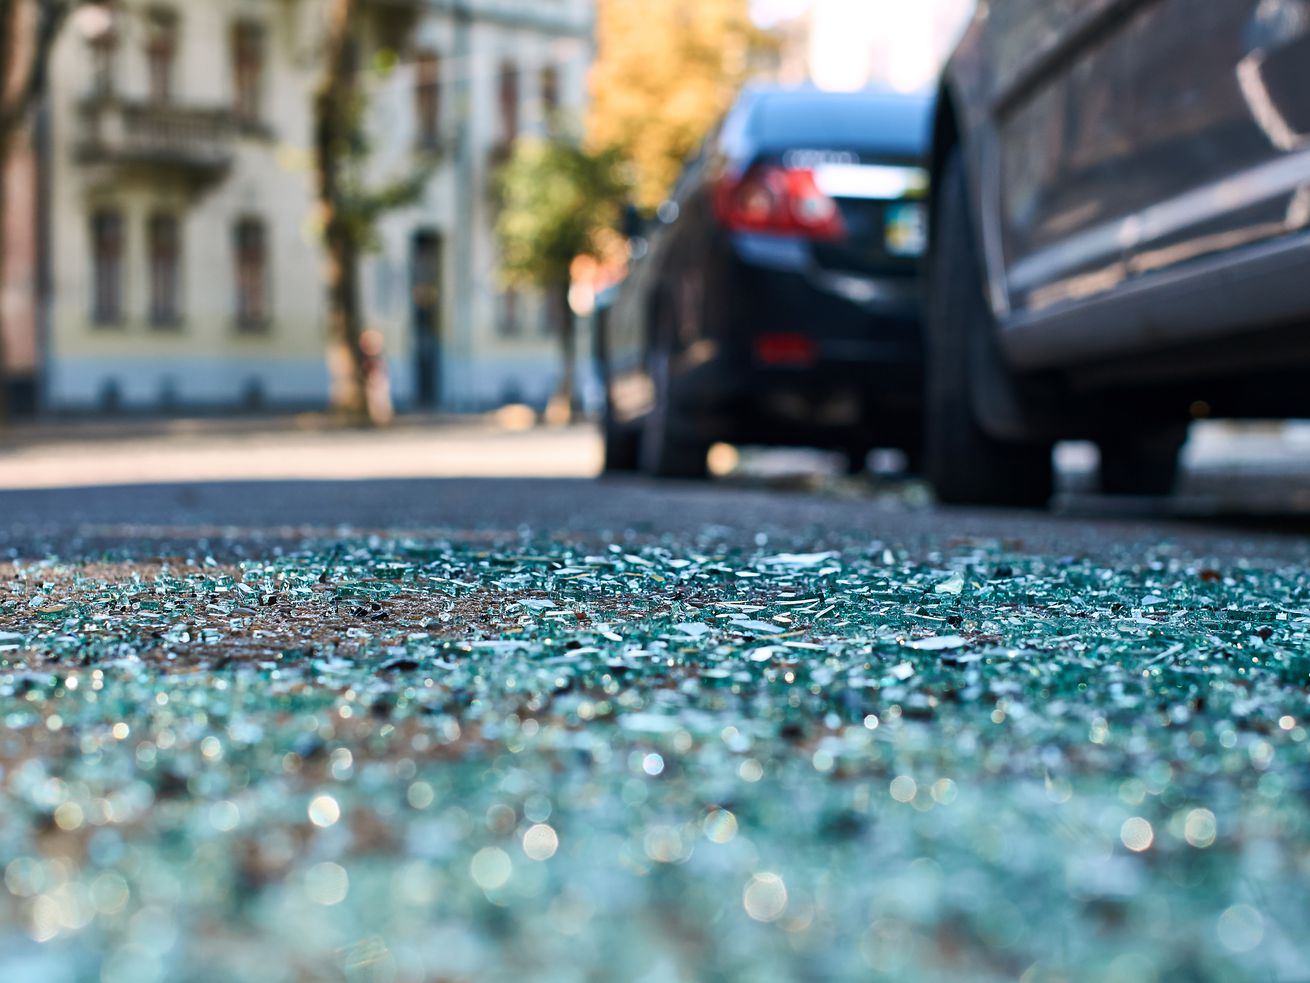 No one was injured when bullets shot out a vehicle window Oct. 21, 209.